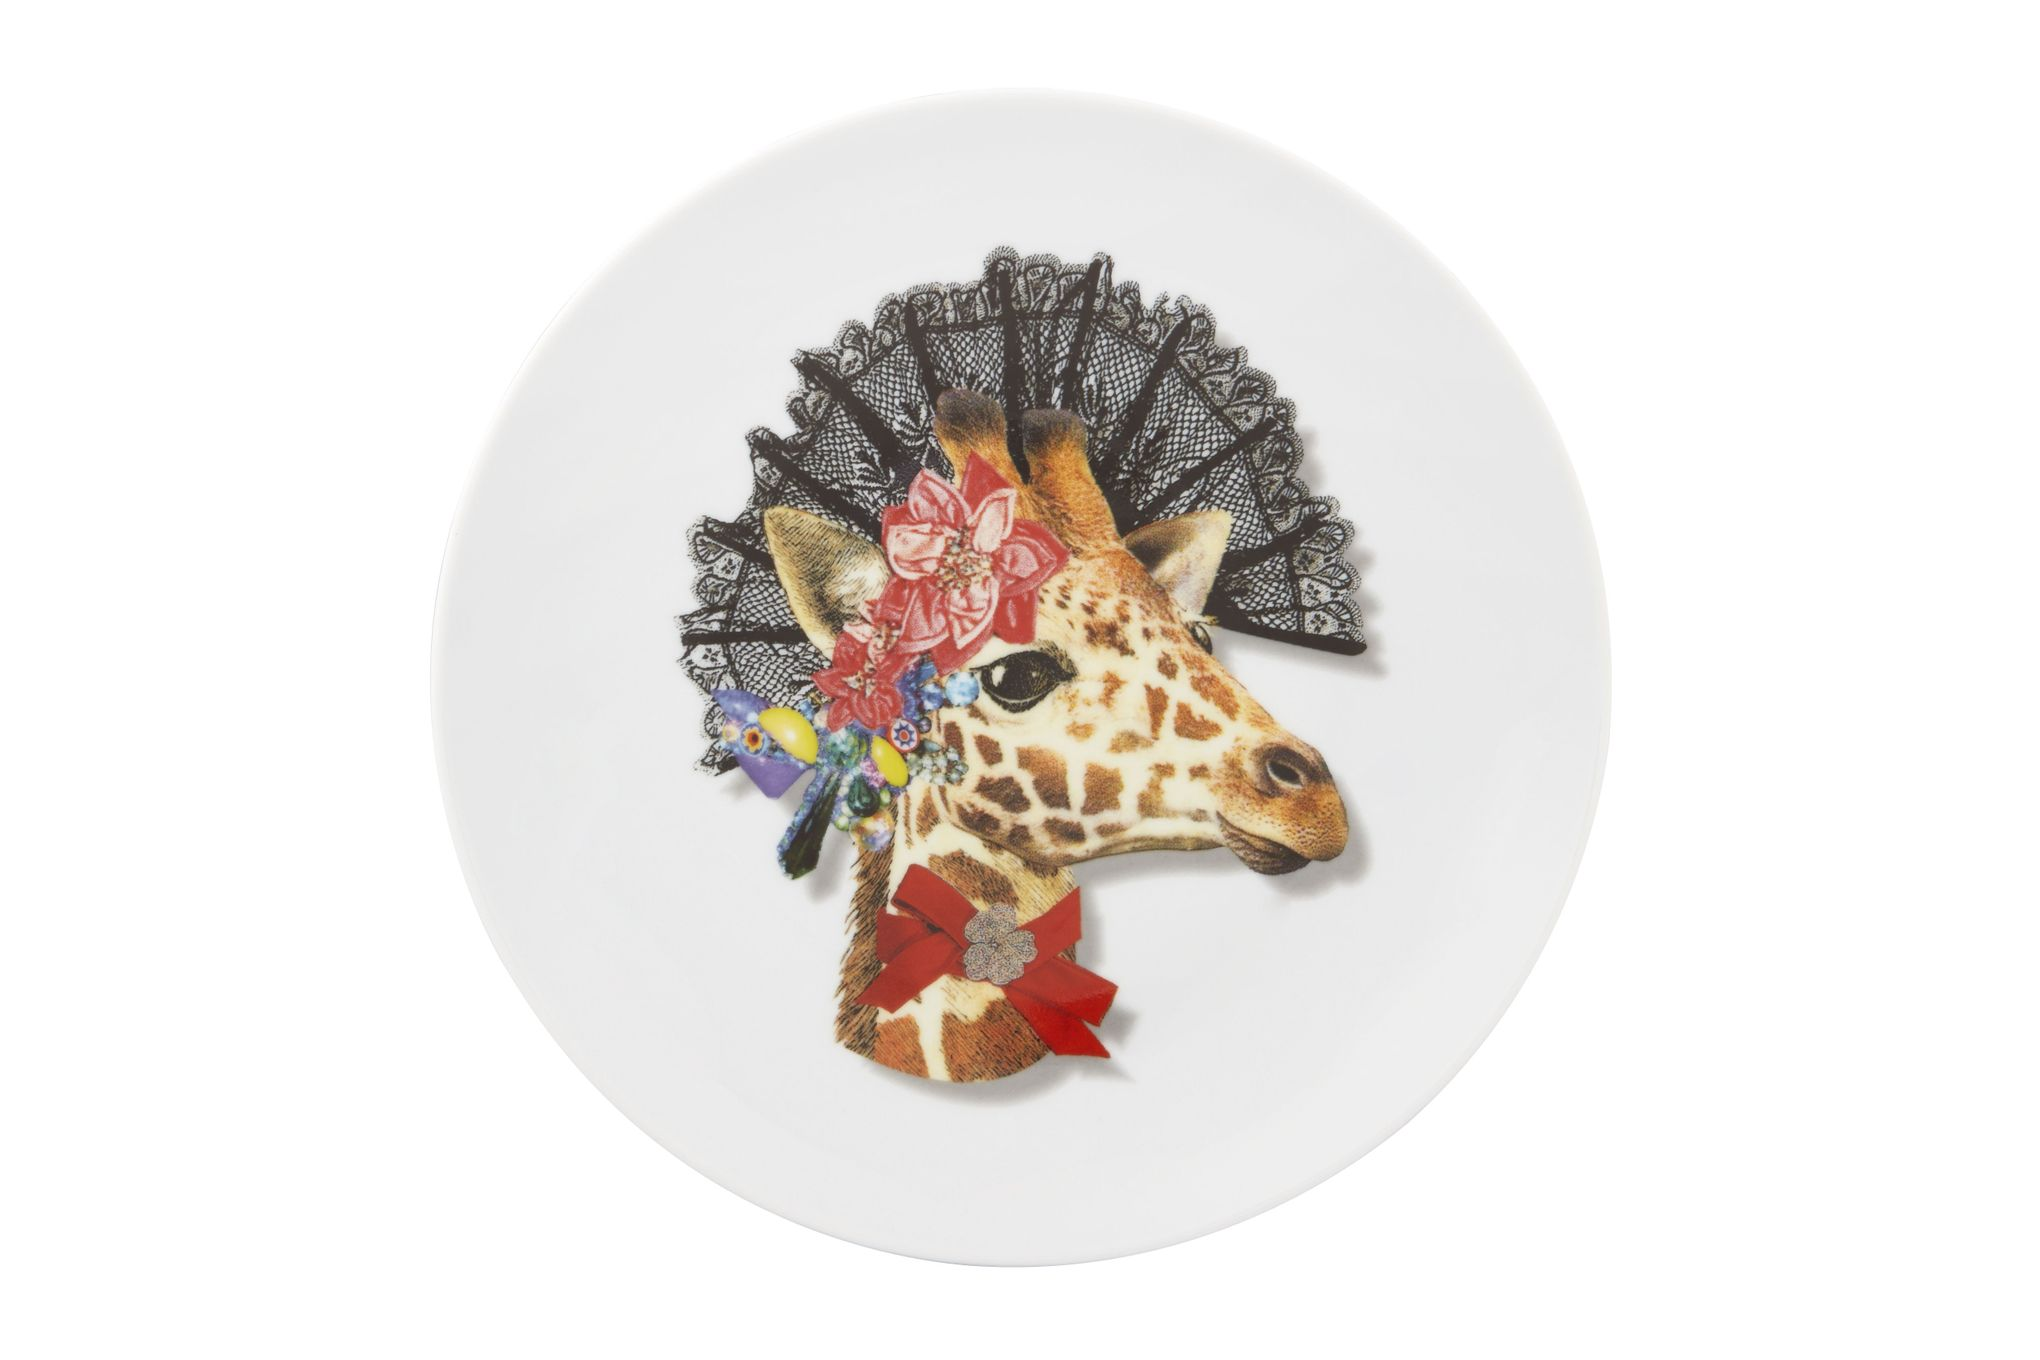 Christian Lacroix Love Who You Want Plate - Giftware Doña Jirafa - Gift Boxed 23cm thumb 1